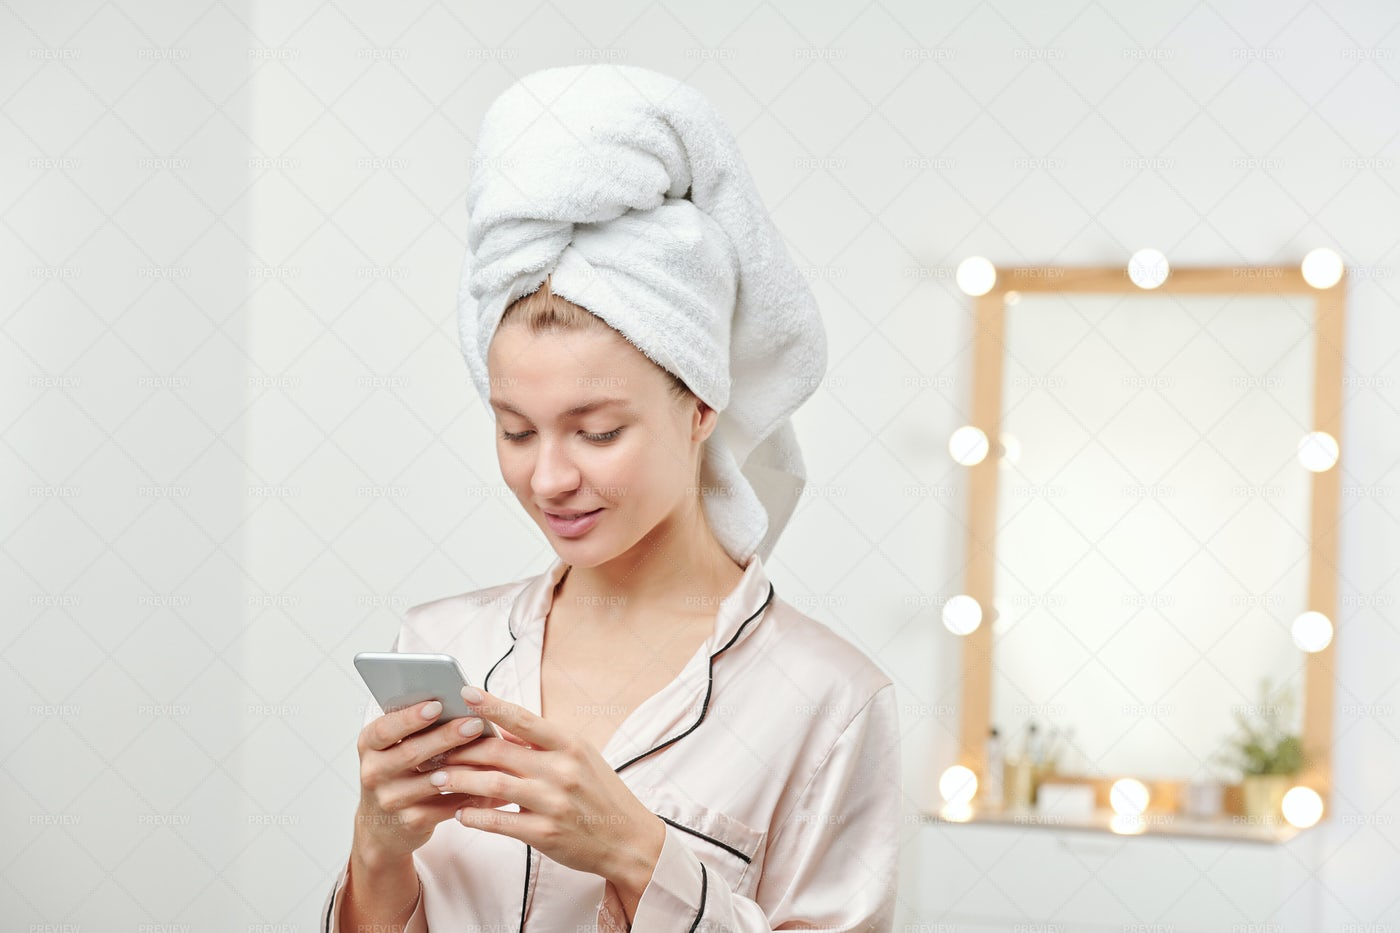 Young Clean Woman With Soft White...: Stock Photos